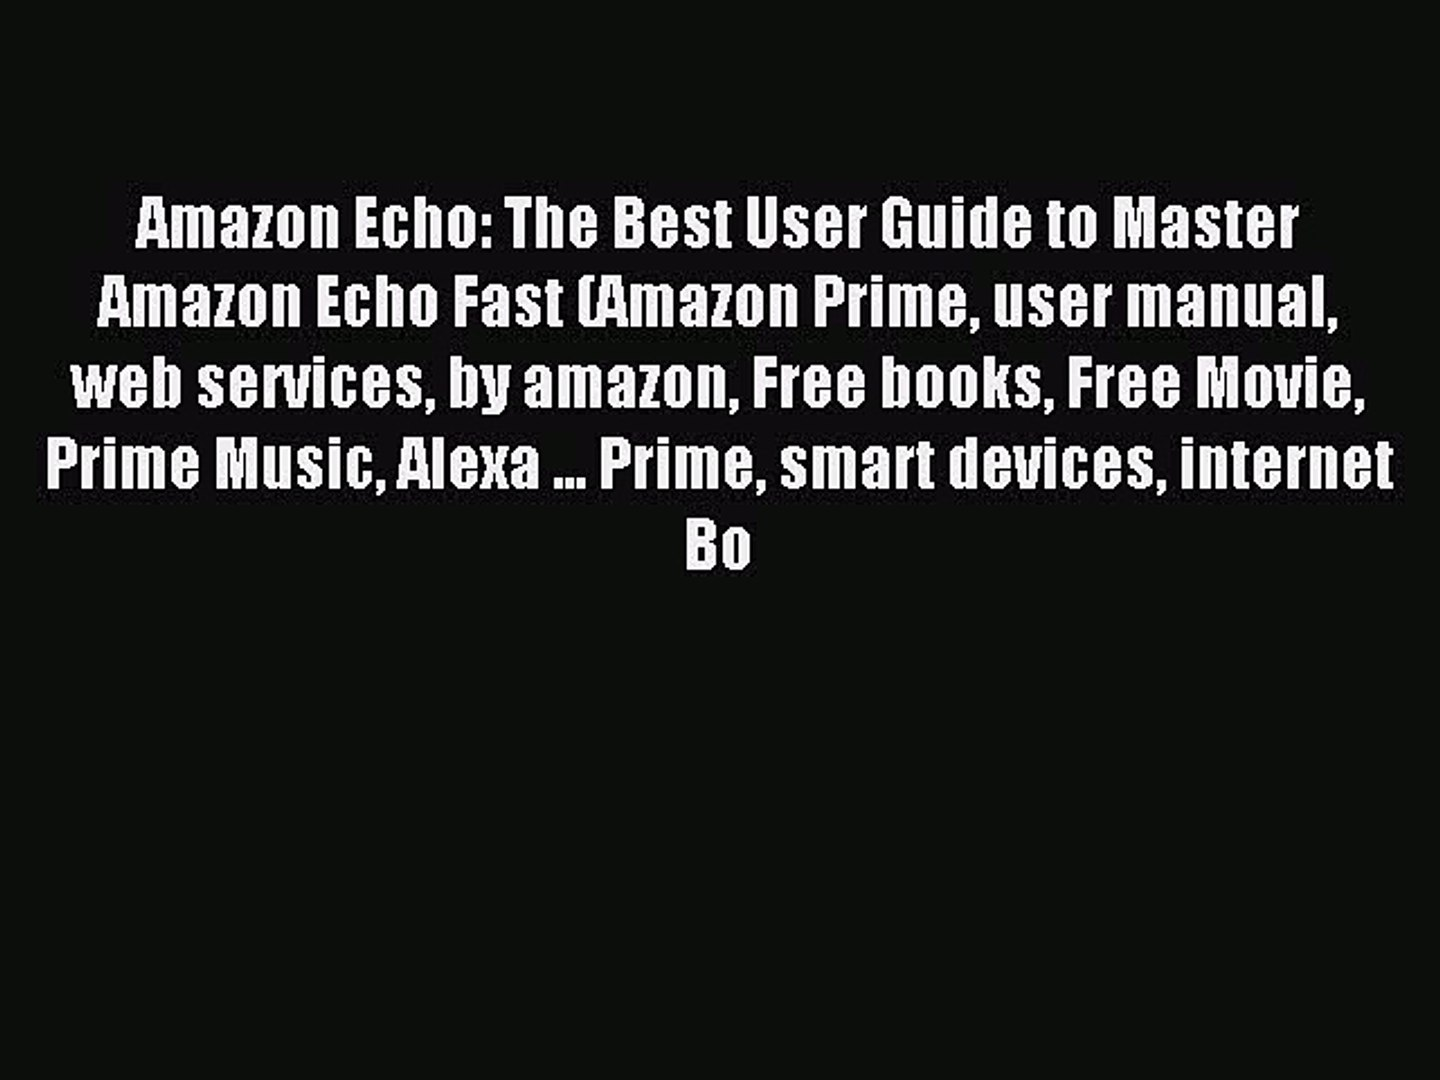 Read Amazon Echo: The Best User Guide to Master Amazon Echo Fast (Amazon Prime user manual